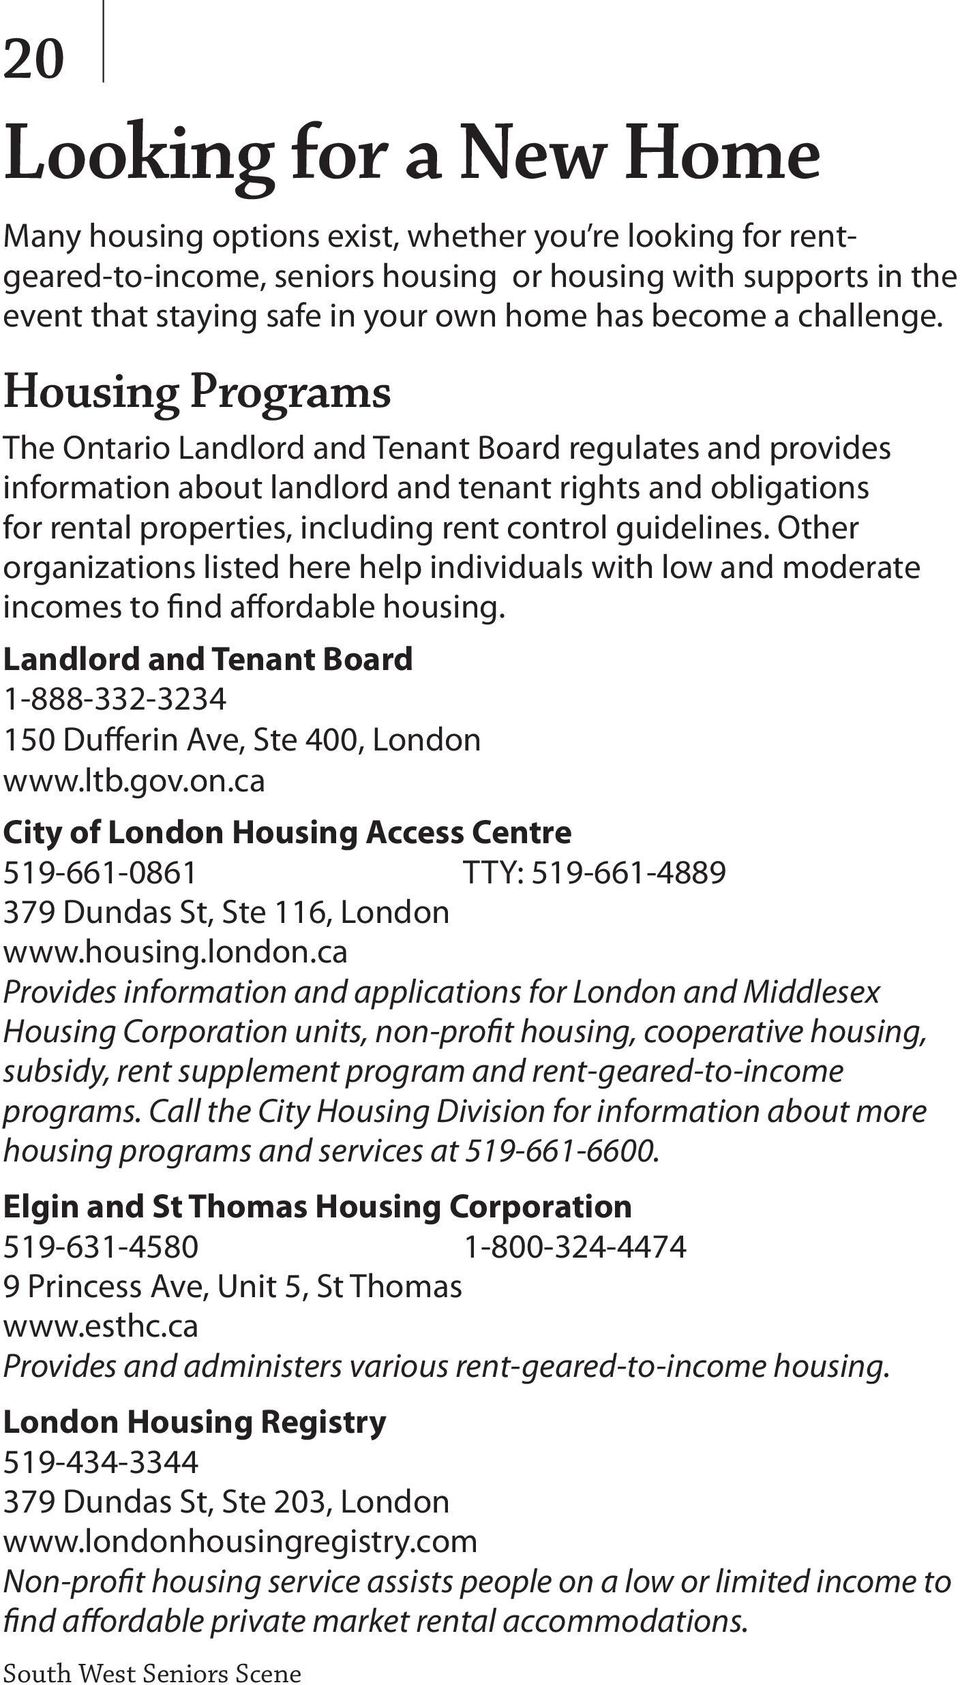 Housing Programs The Ontario Landlord and Tenant Board regulates and provides information about landlord and tenant rights and obligations for rental properties, including rent control guidelines.